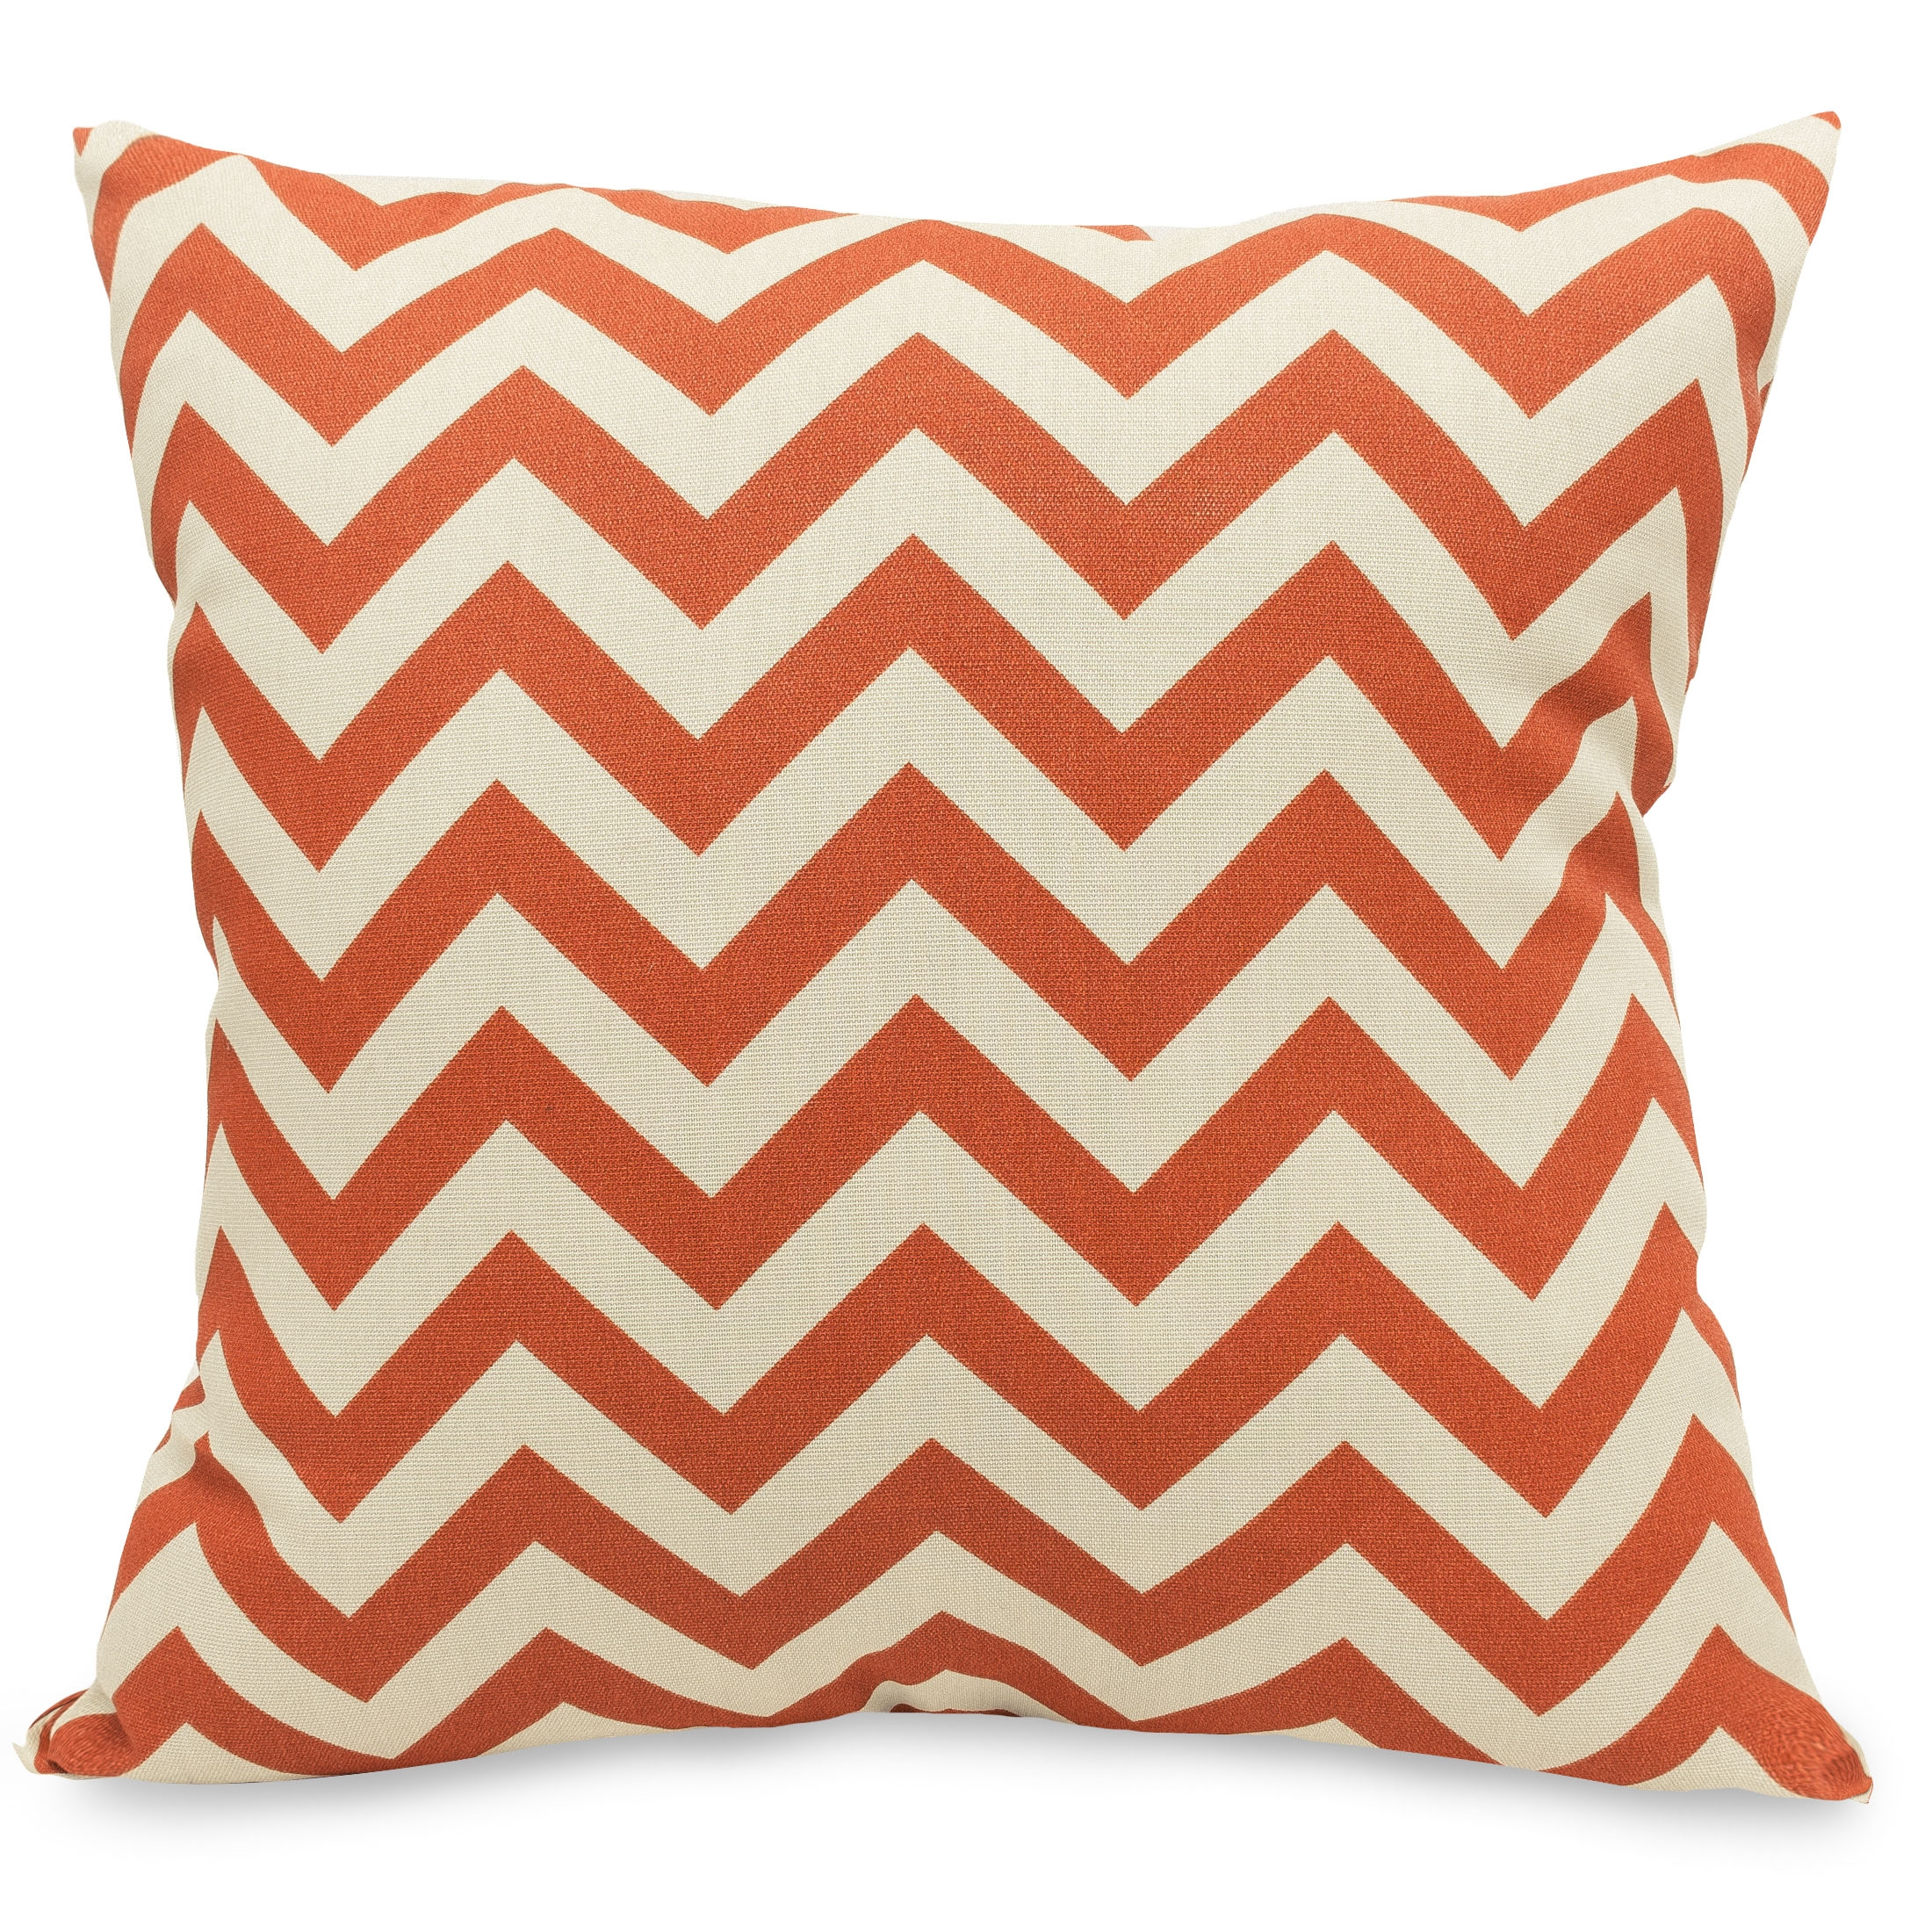 Luxury Sofa Pillows with Elegant Pattern for Living Room Interior: Zig Zag Pattern Sofa Pillows